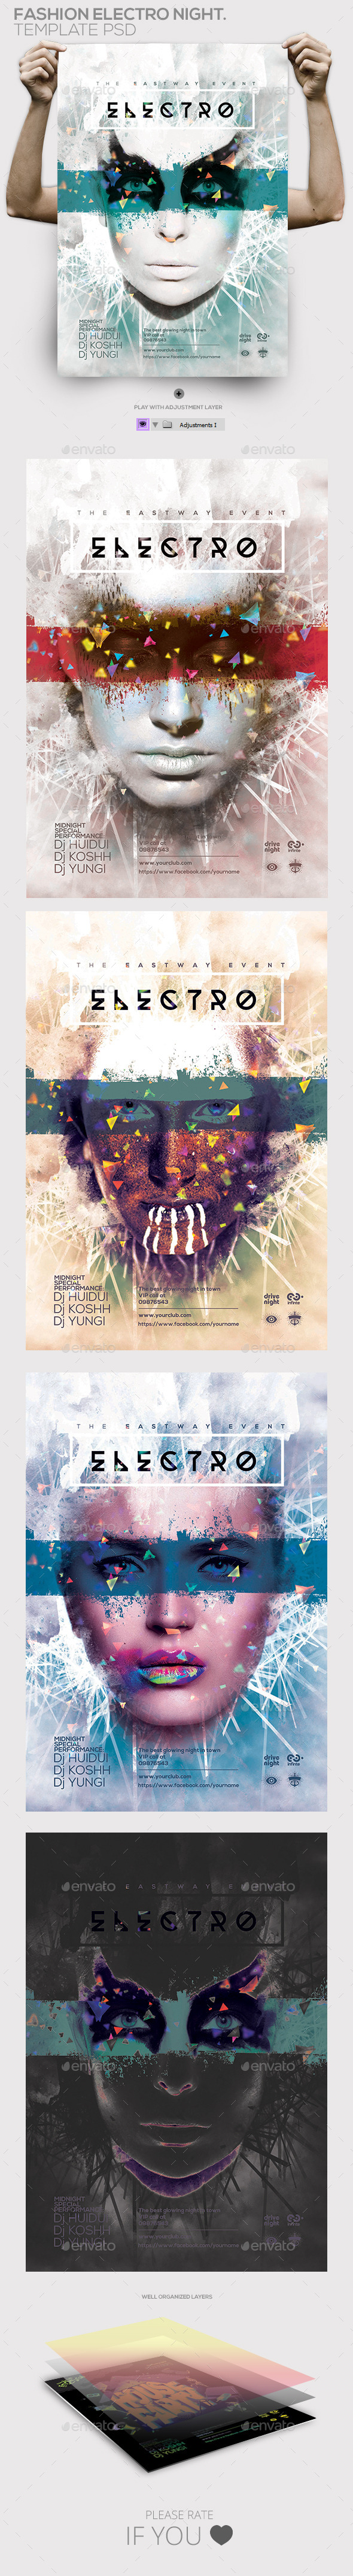 Electro Fashion Night Party Flyer / Poster  - Events Flyers